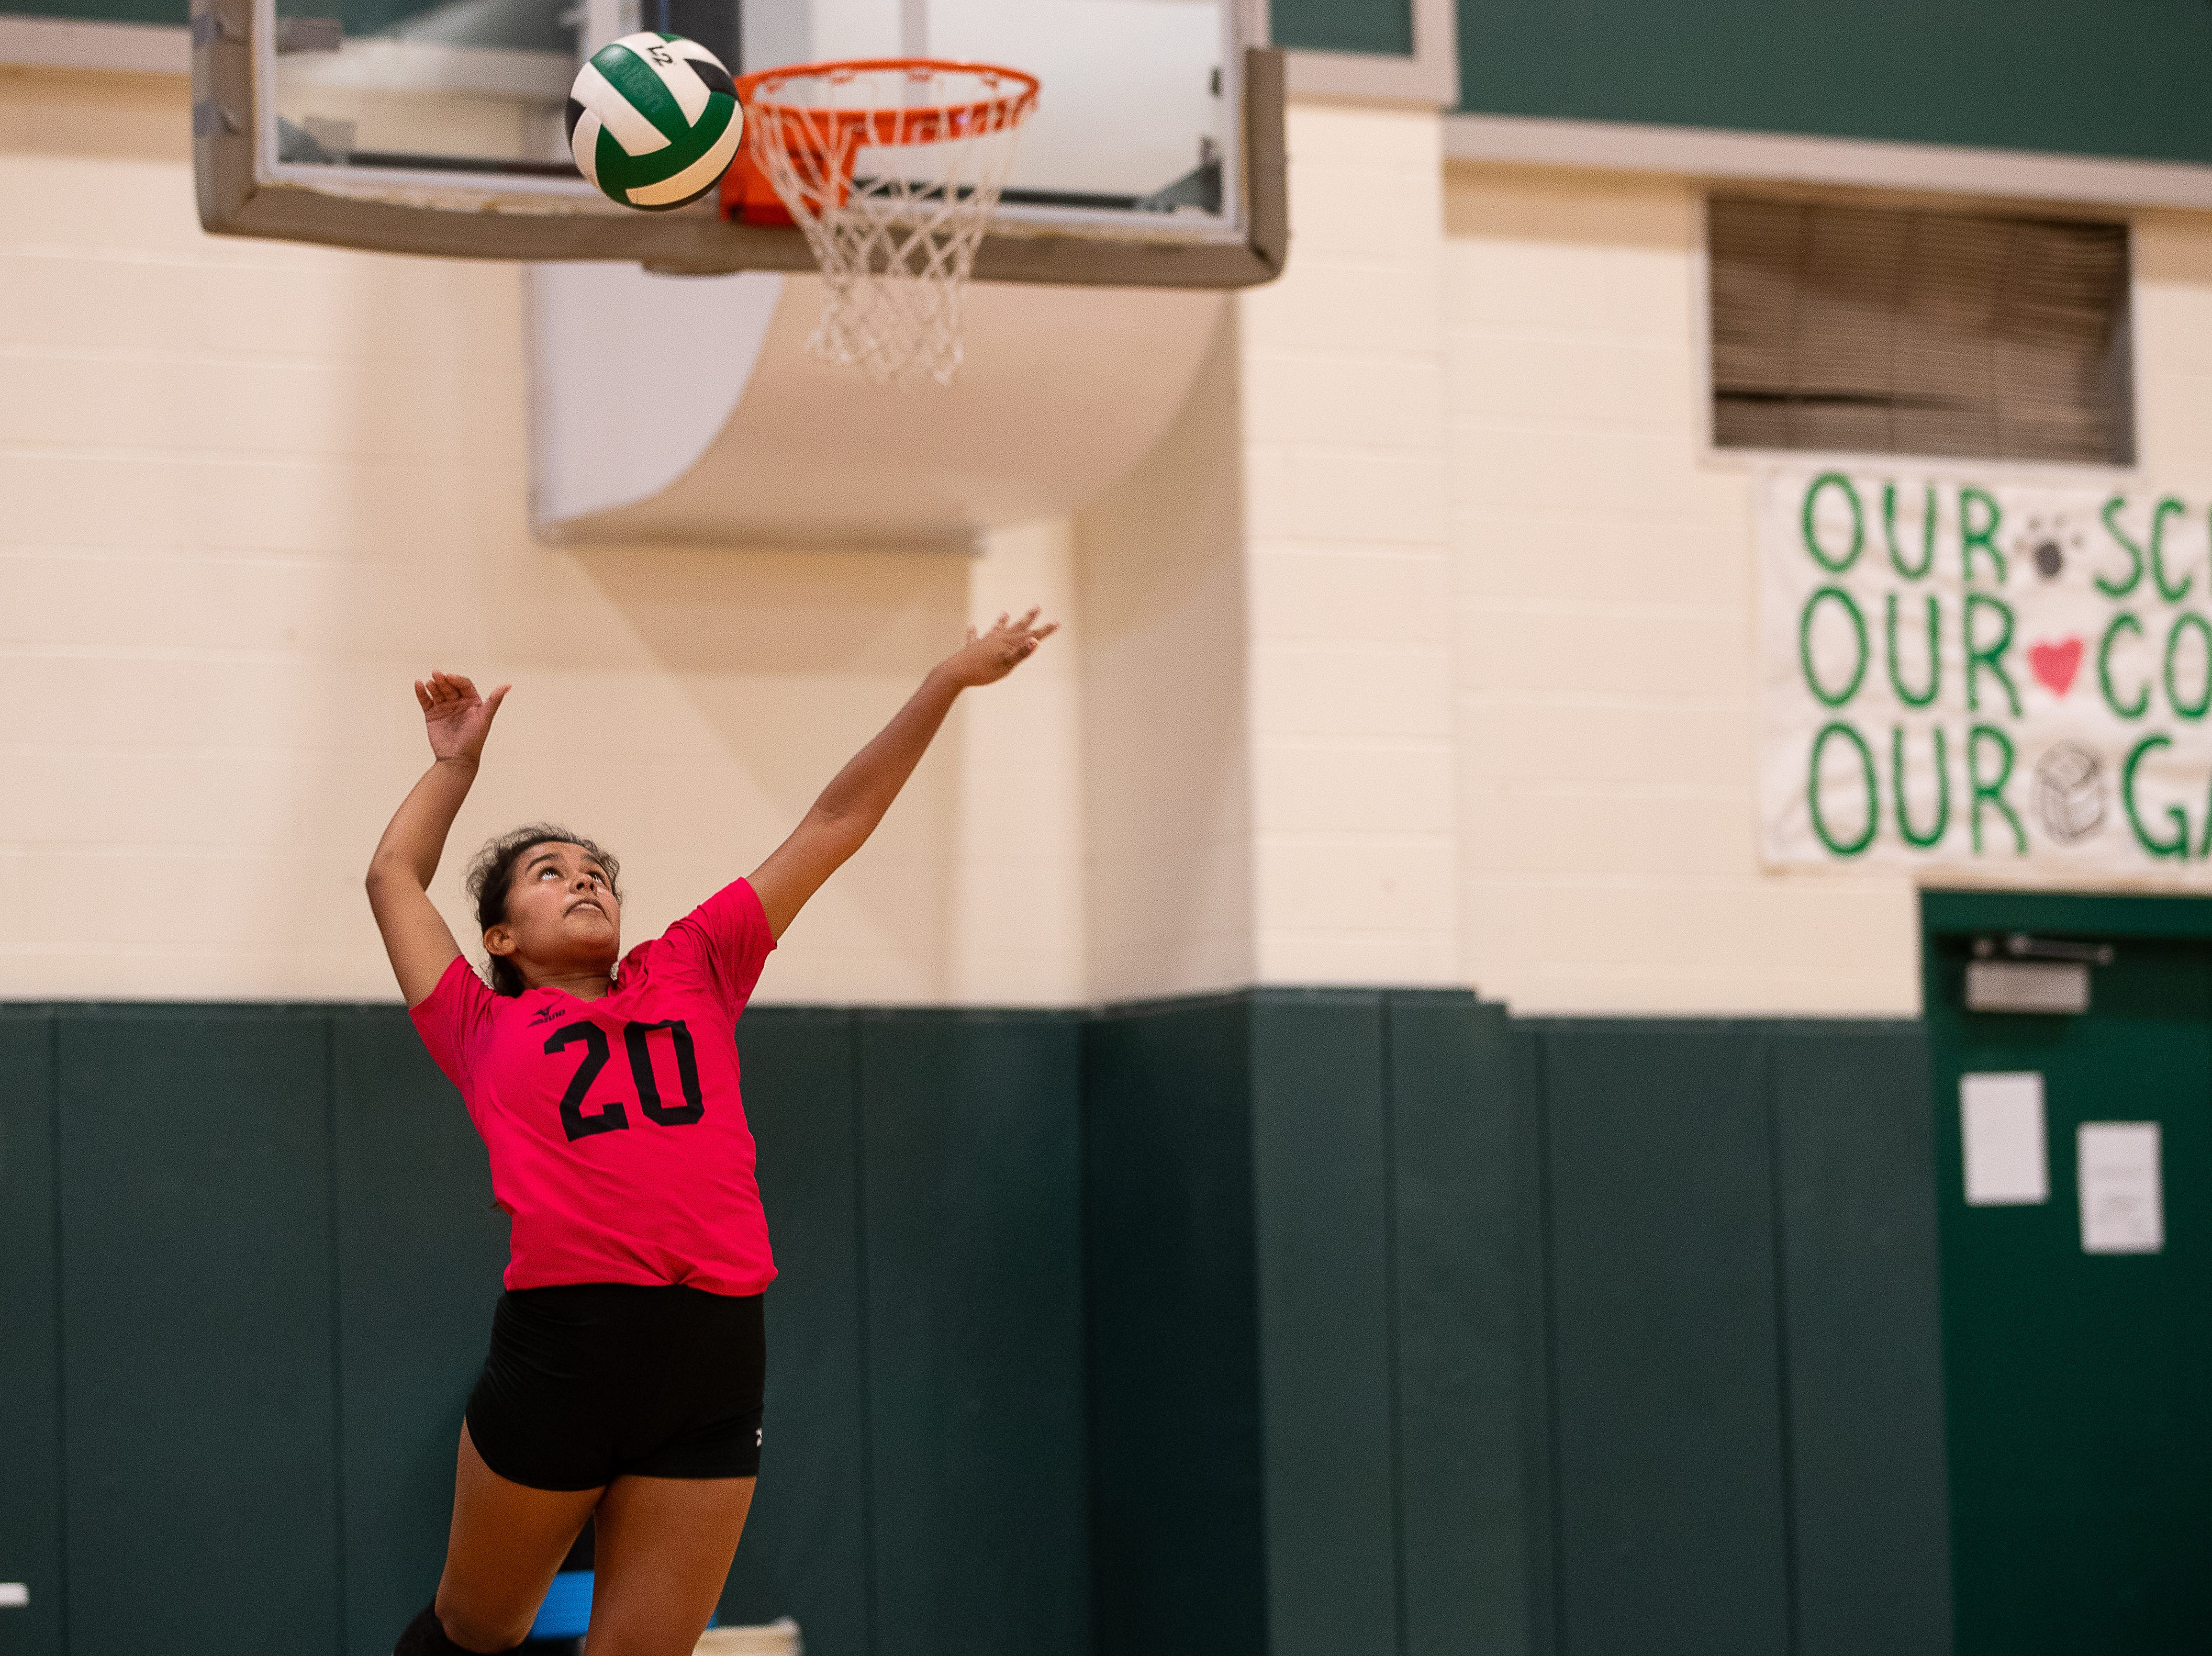 Taft's Aubrey Banda jumps to surf the ball during a game in their newly rebuilt gymnasium on Thursday, Aug. 23, 2018. Their  gym was heavily damaged during Hurricane Harvey and have played and practiced on the road in 2017.